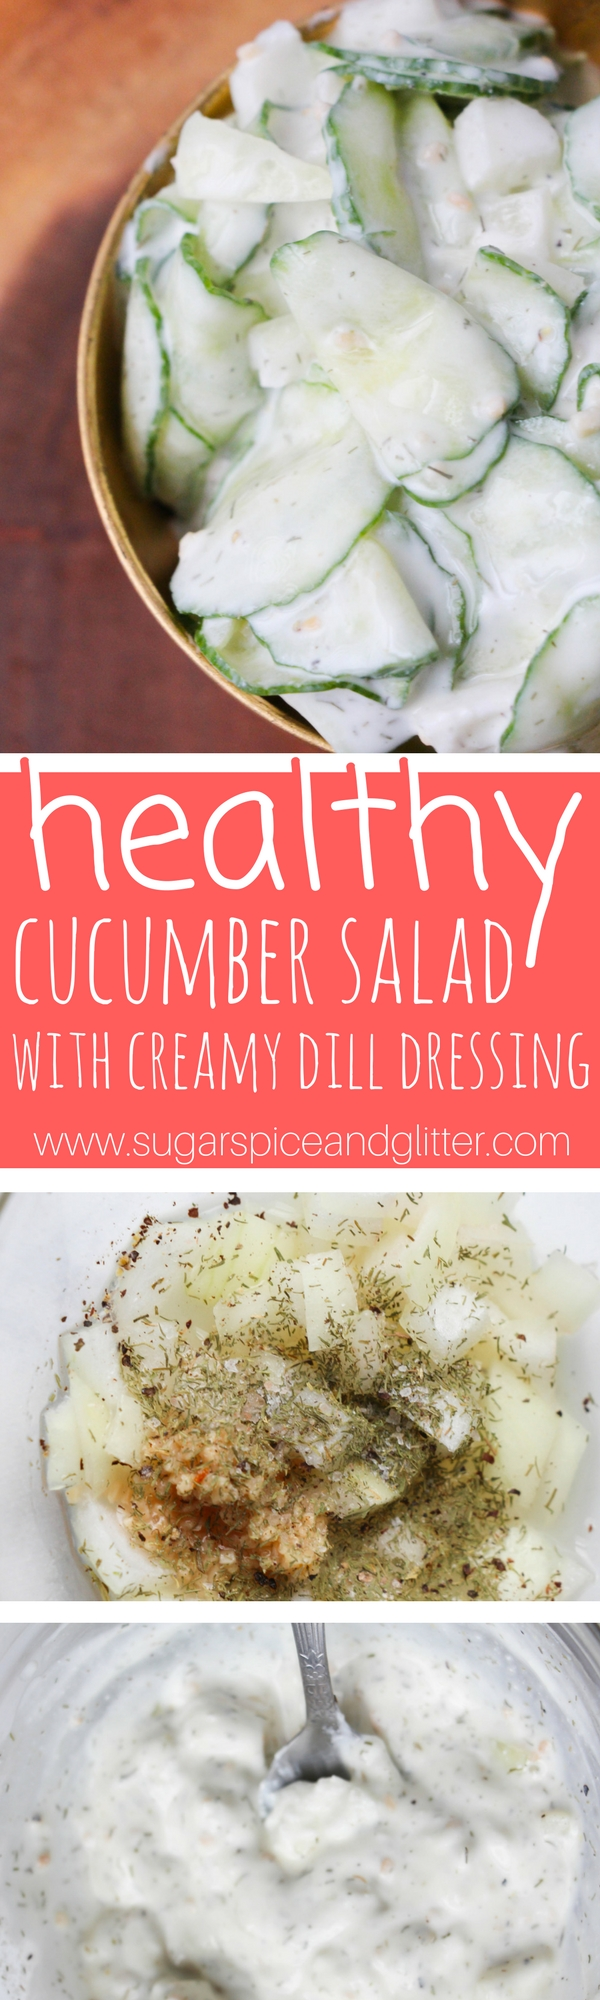 A creamy, tangy and refreshing cucumber salad recipe - this vegetable side dish is ready in less than 5 minutes and makes a great last-minute addition to a BBQ or busy weeknight meal.